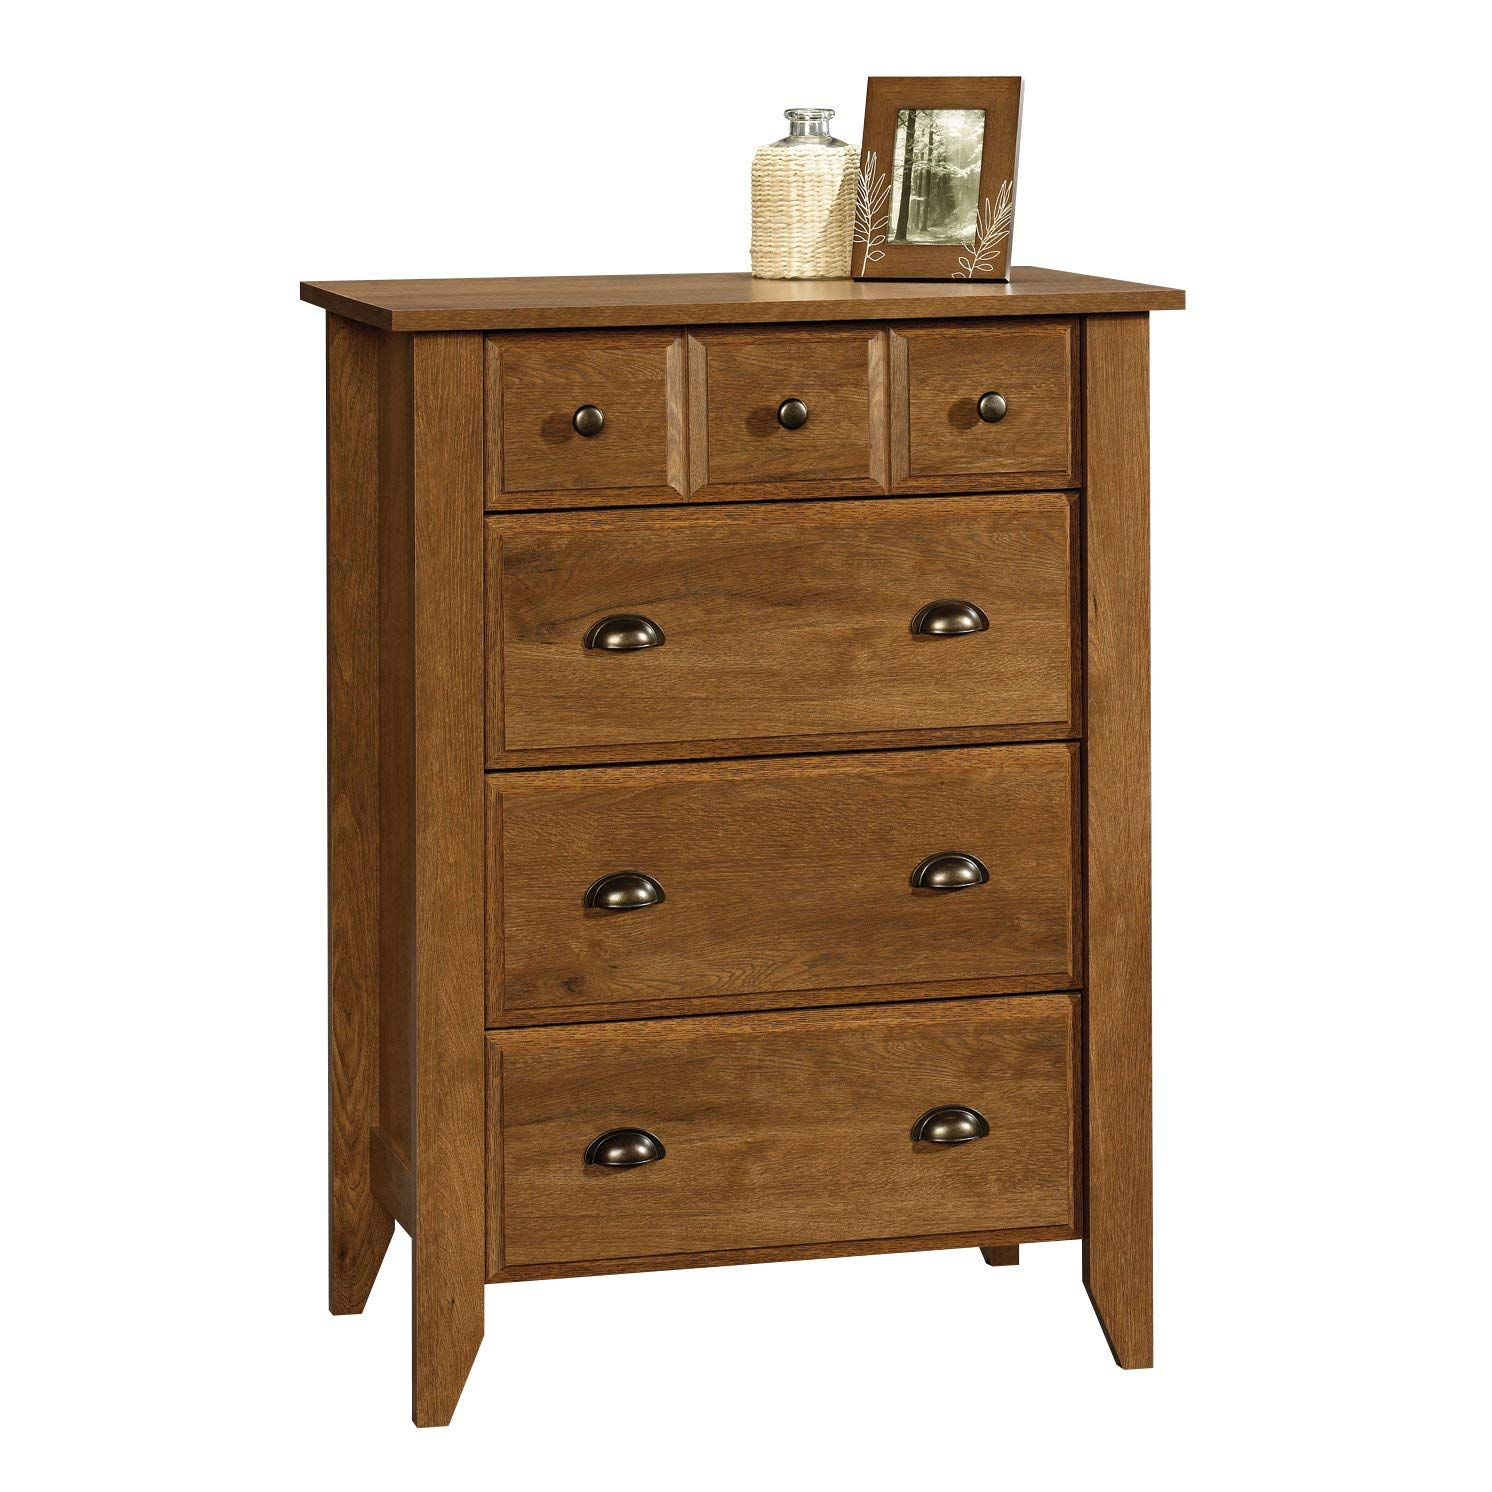 4-Drawer Bedroom Chest by Sauder 410288